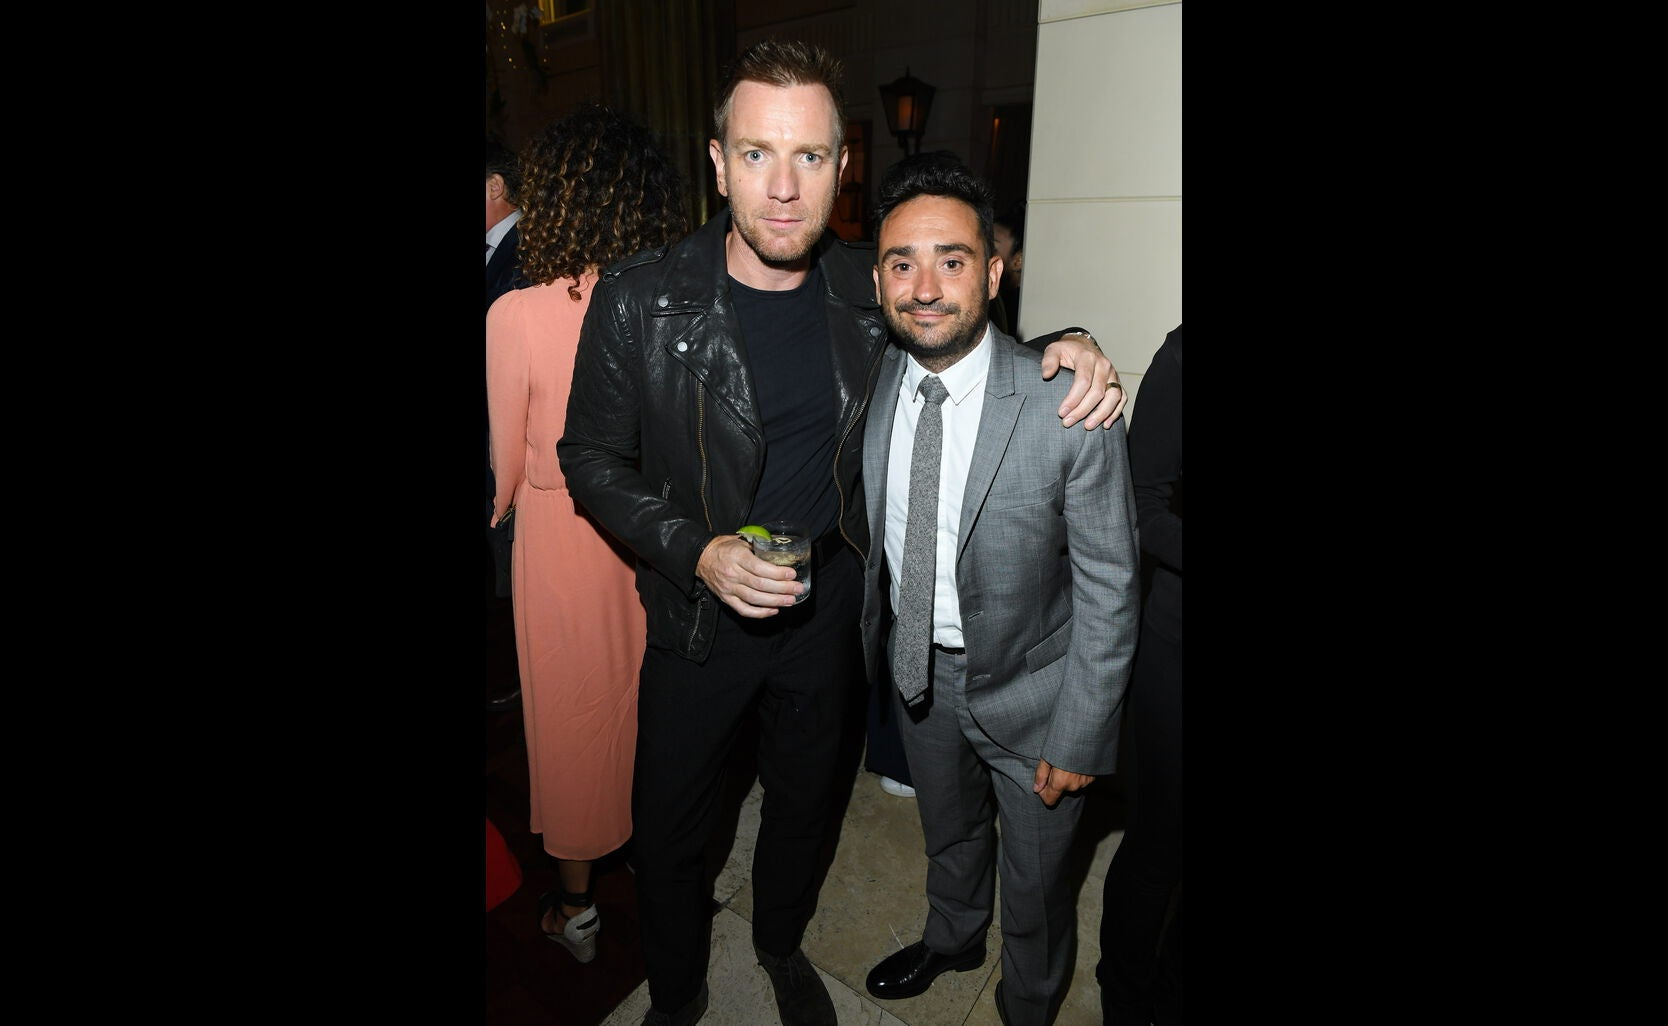 Golden Globe nominee Ewan McGregor and director J. A. Bayona at the HFPA/InStyle party, Toronto 2016